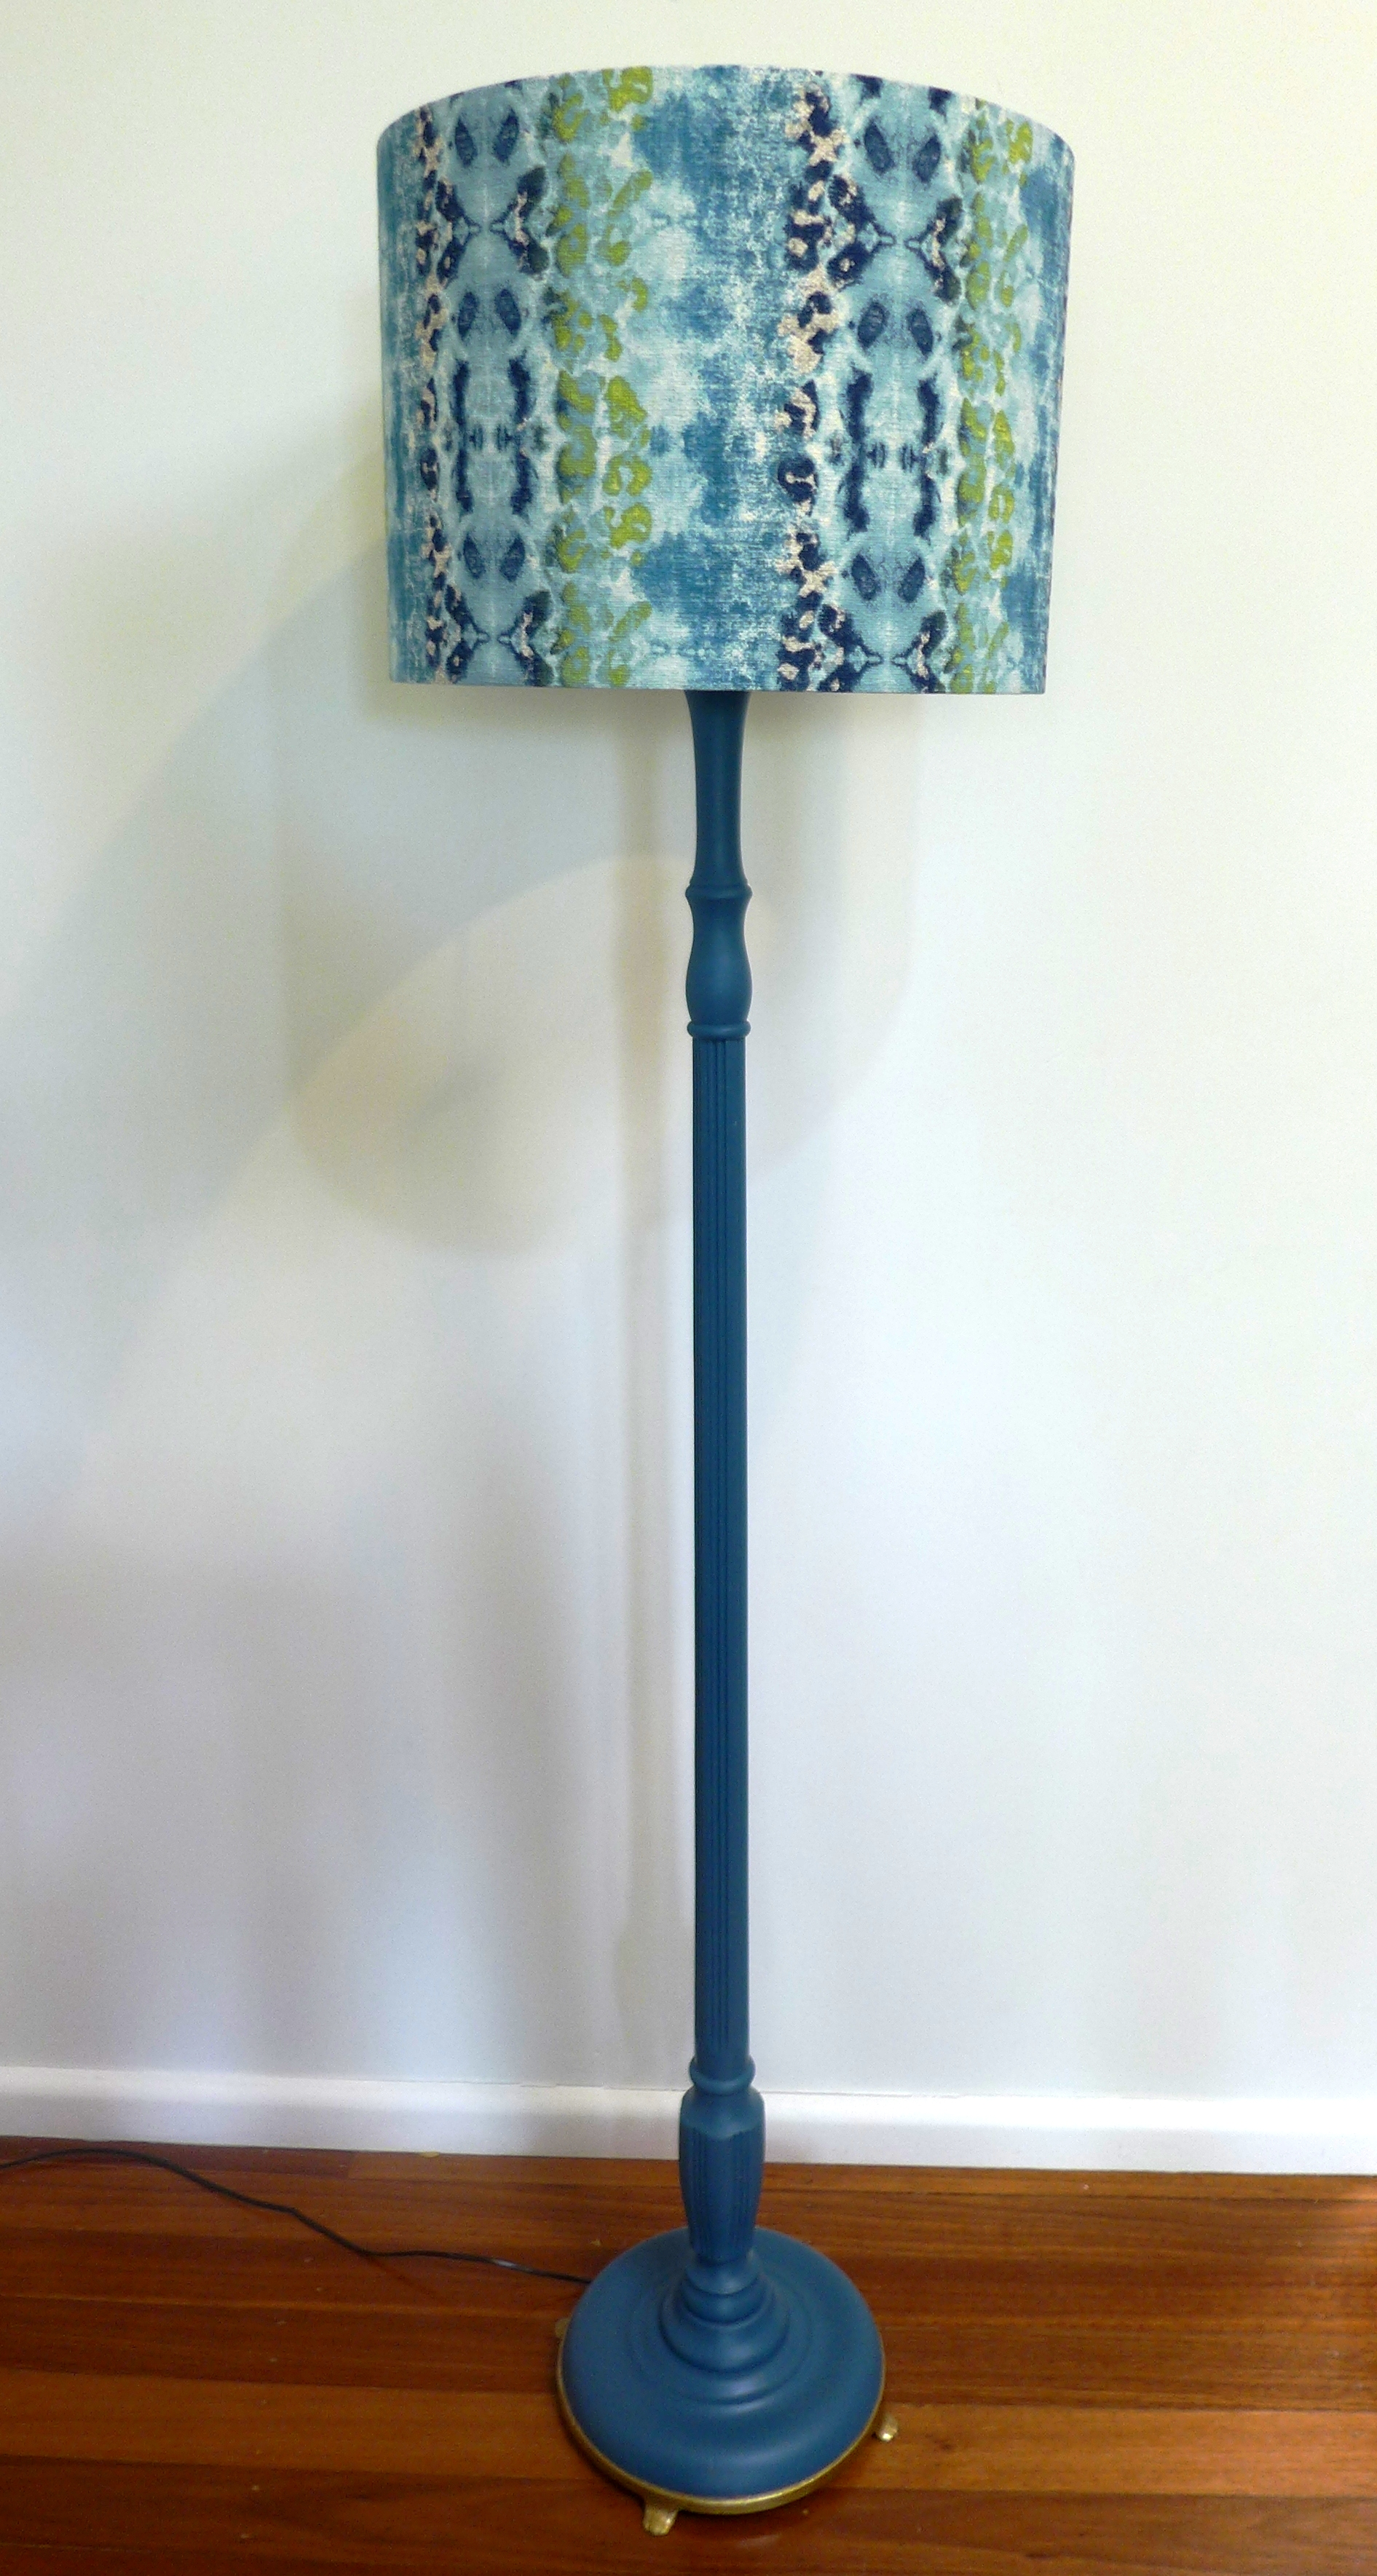 Snake lampshade with teal base.JPG